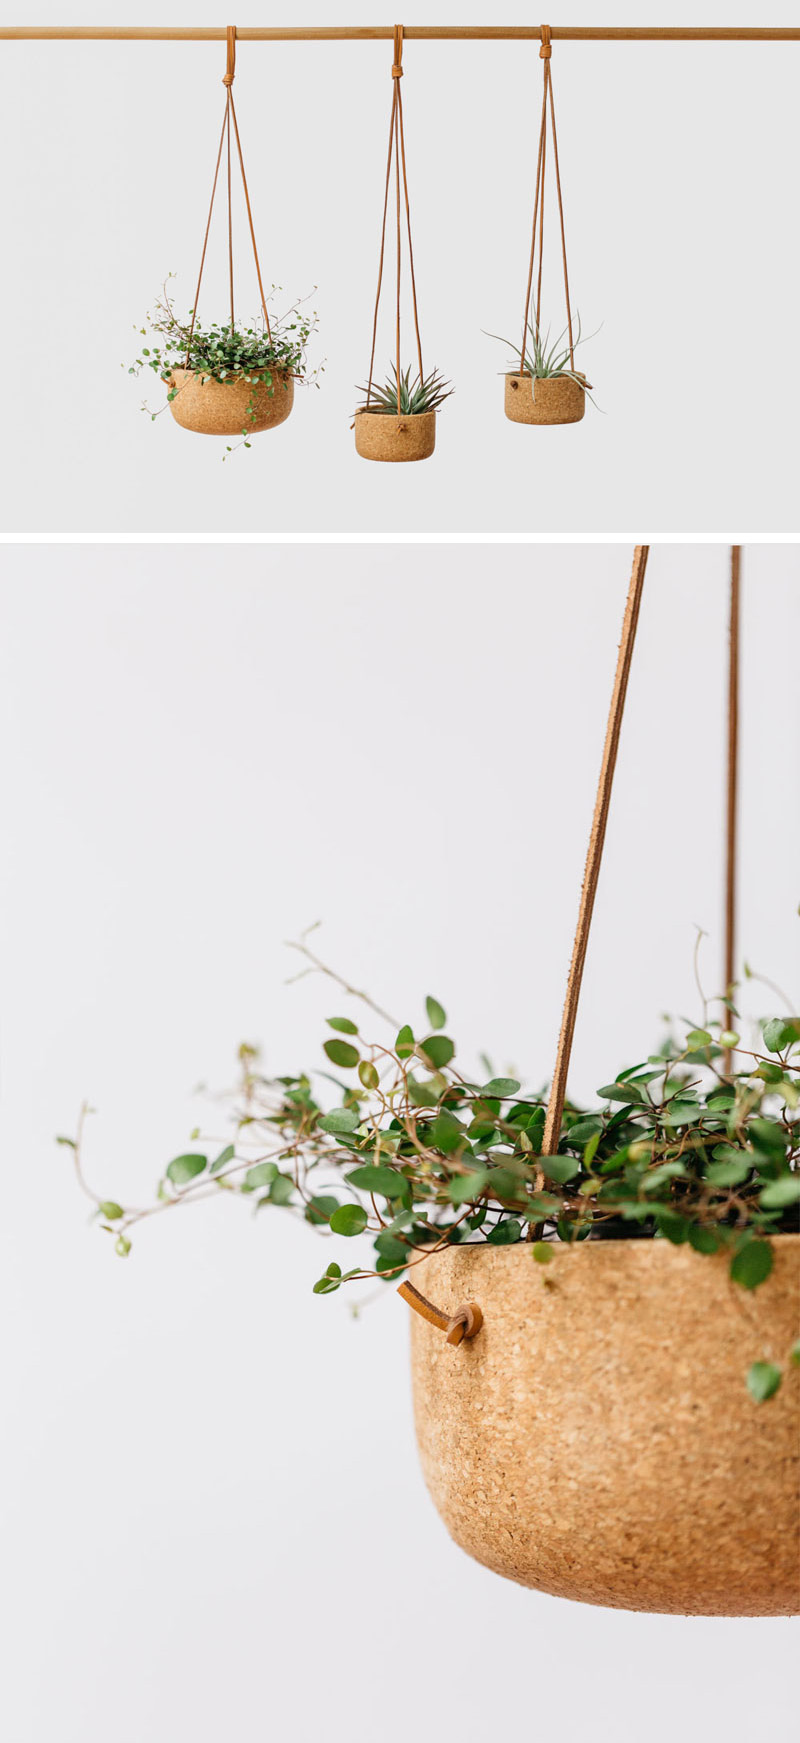 Vintage inspired, these modern hanging planters are made from hand-turned cork and natural leather lace. In variety of sizes, these strong pots are ideal for any plant.  #HangingPlanter #ModernPlanter #HomeDecor #Garden #Plants